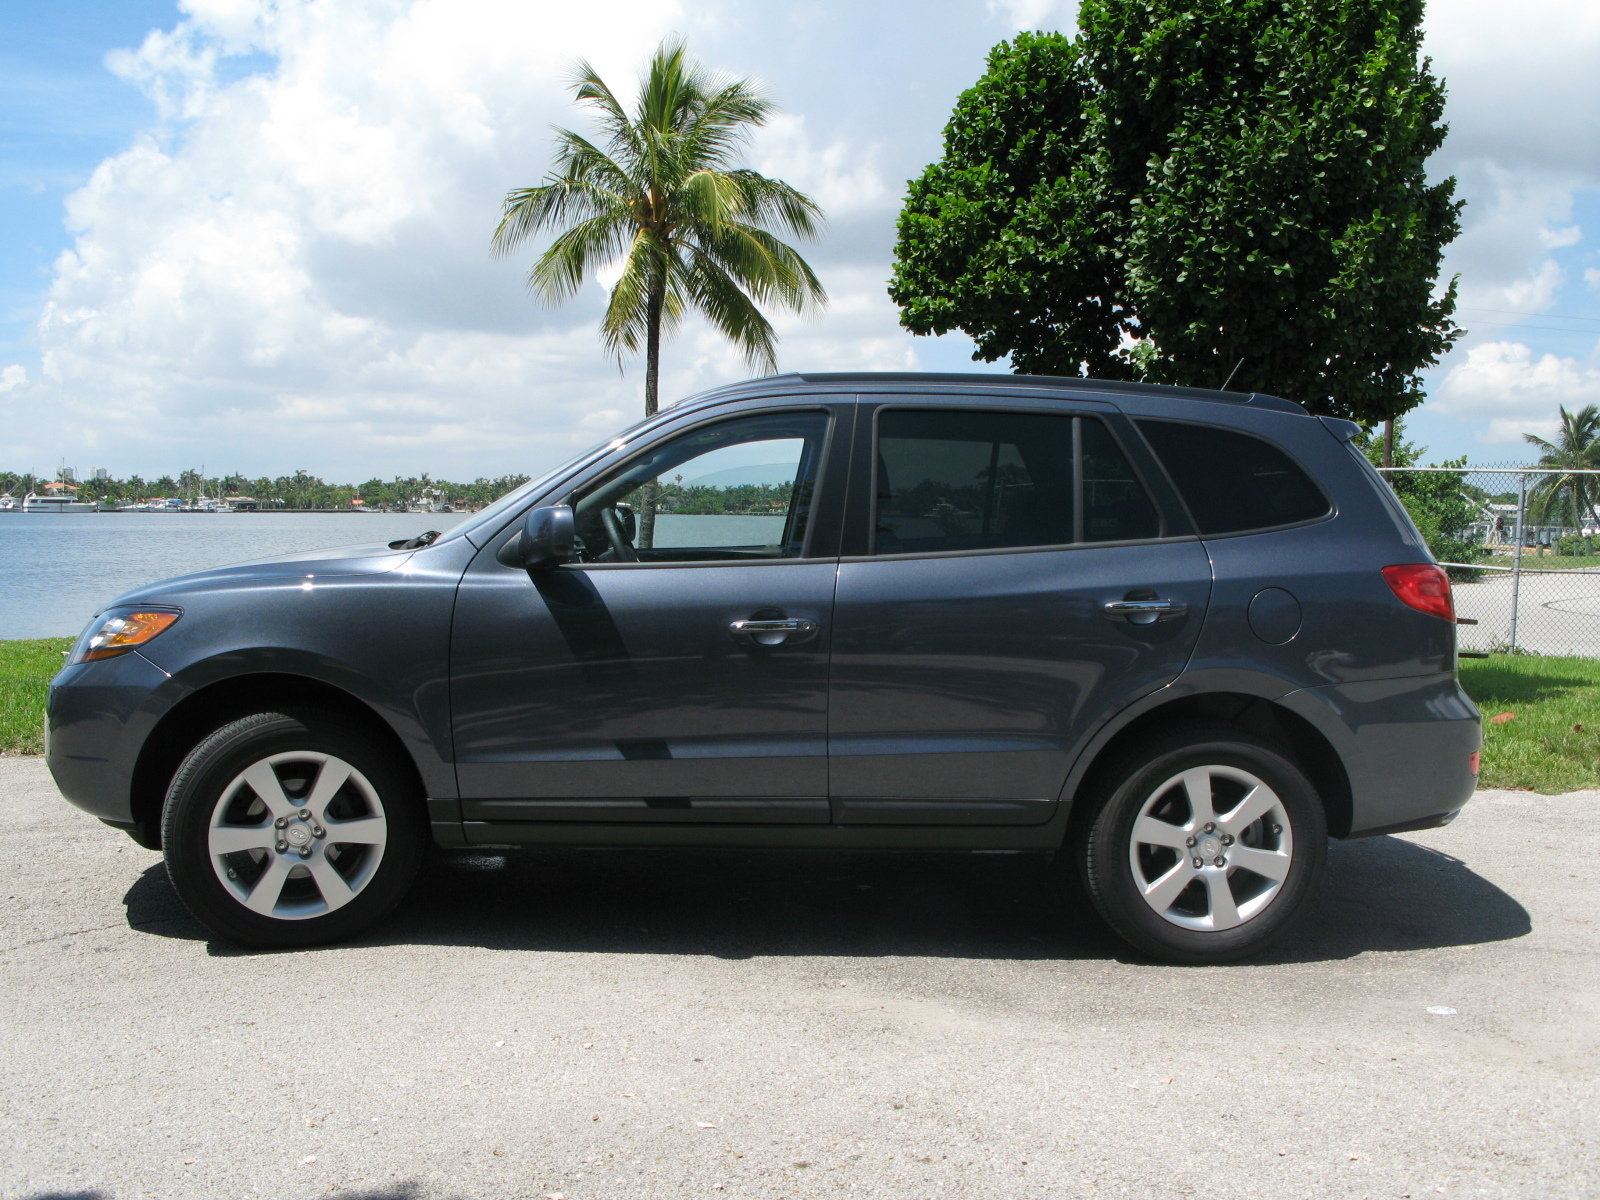 2008 hyundai santa fe limited awd picture 261823 car review top speed. Black Bedroom Furniture Sets. Home Design Ideas